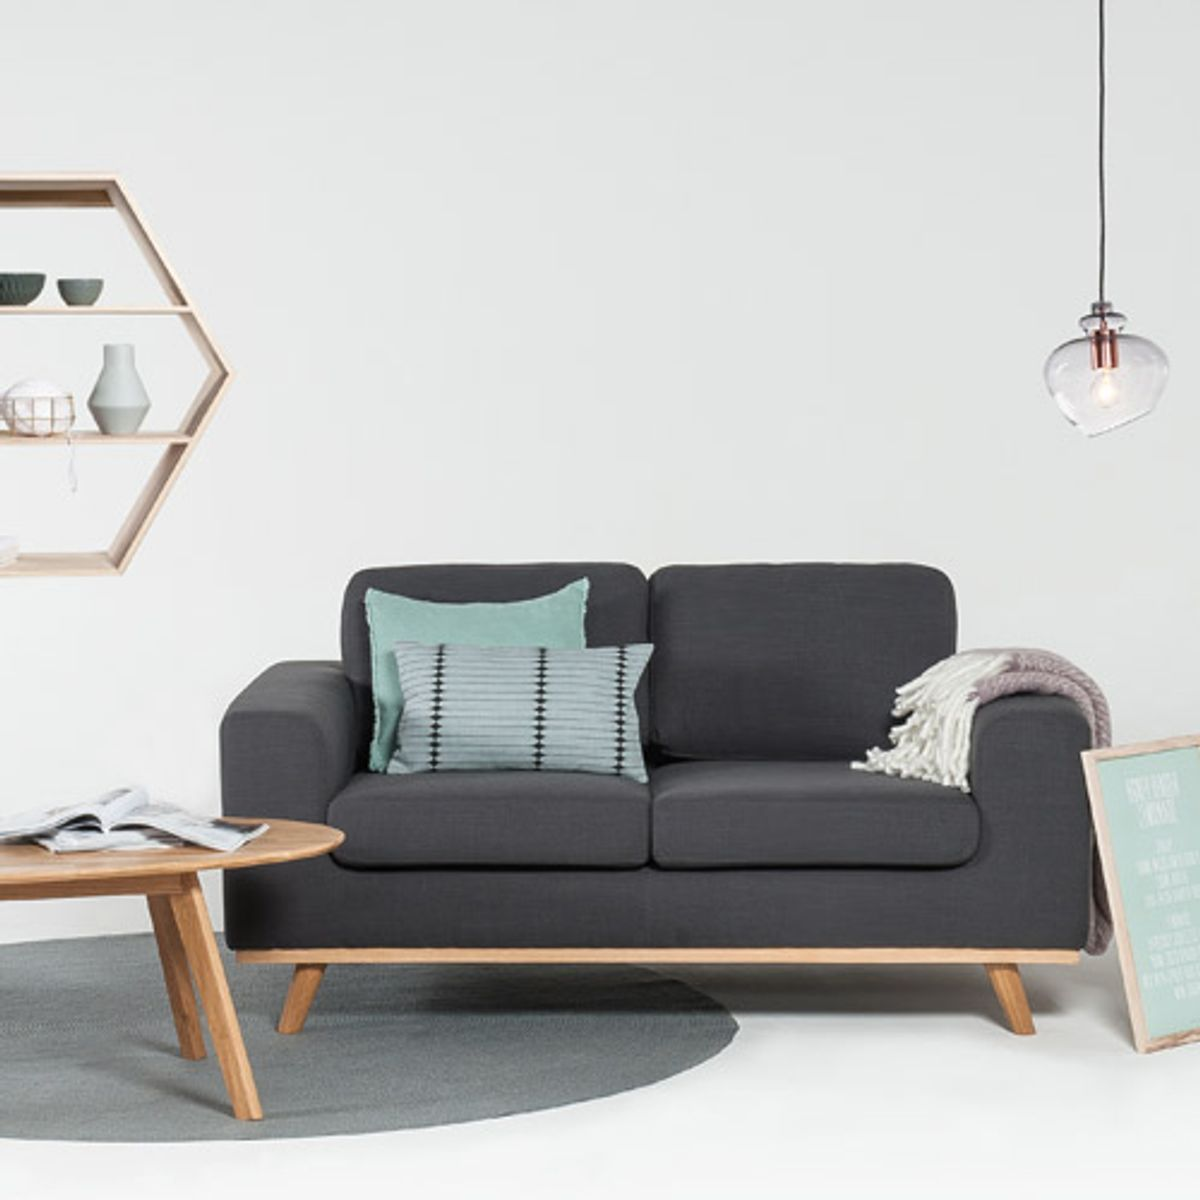 canap en lin l161 pieds en ch ne norway arne lykke anthracite decoclico. Black Bedroom Furniture Sets. Home Design Ideas